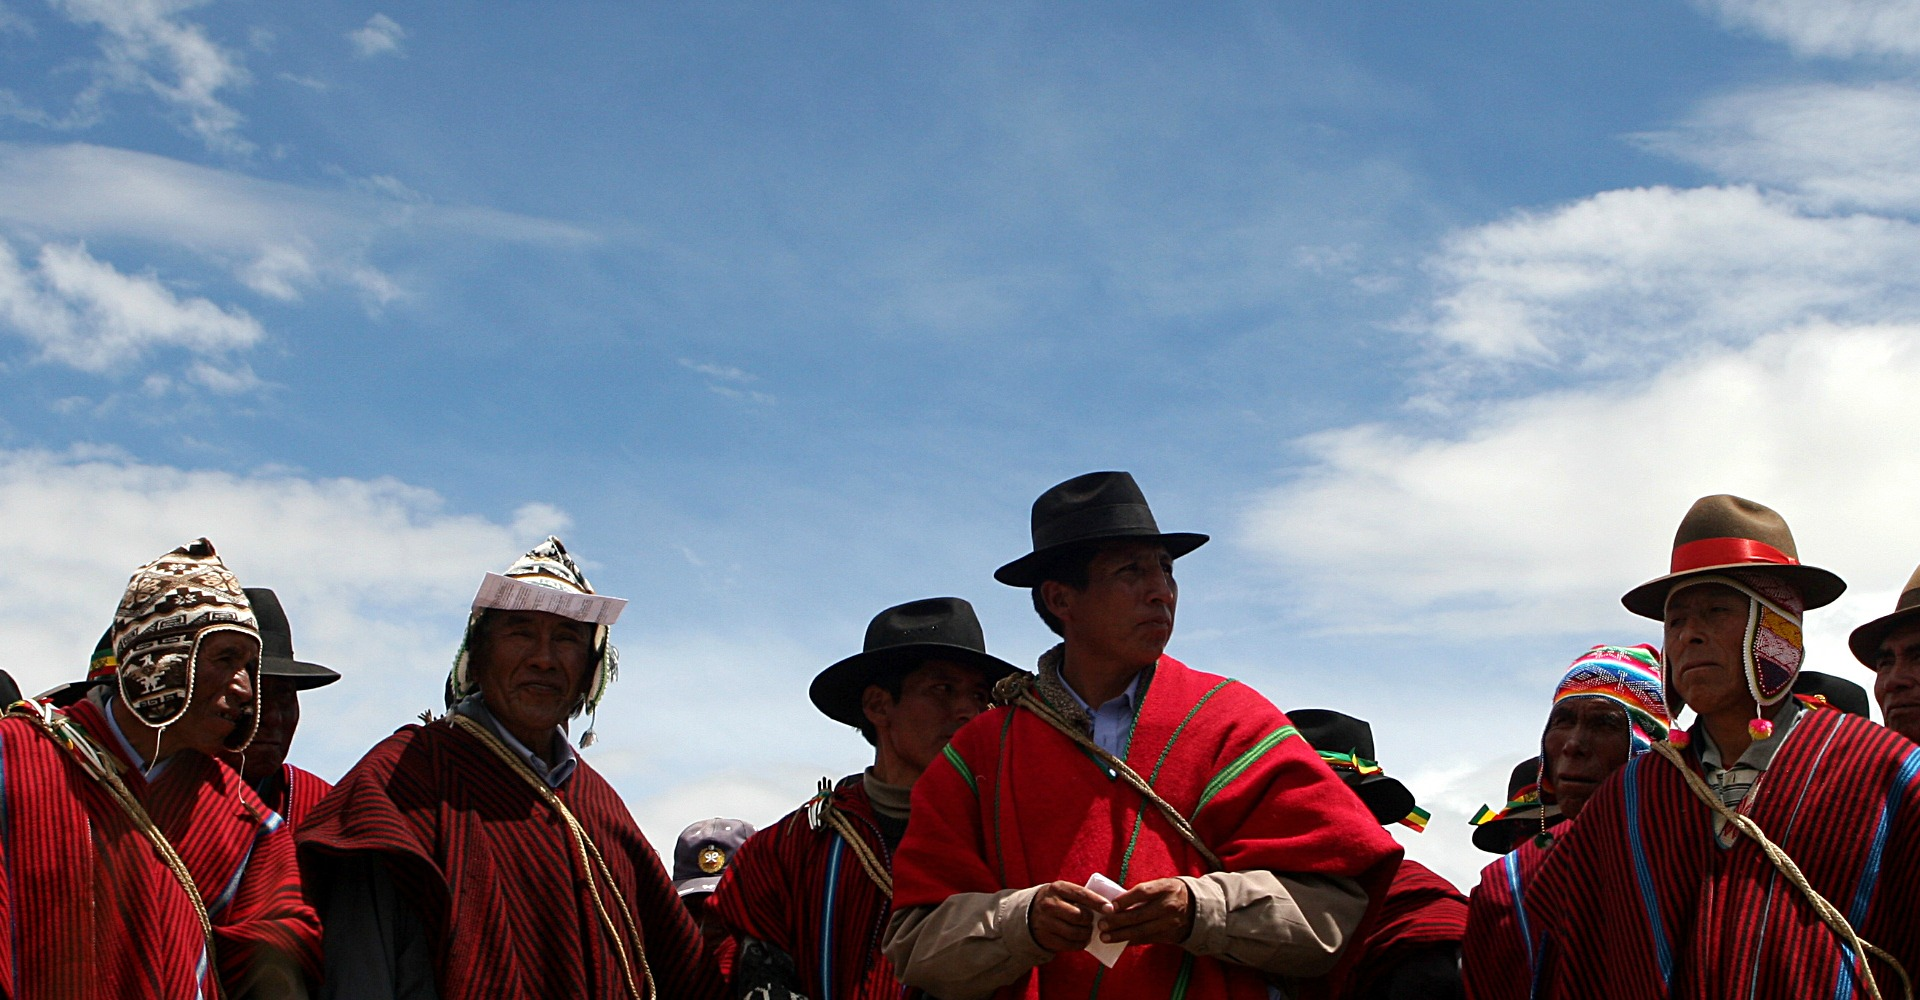 Indigenous peoples in Bolivia